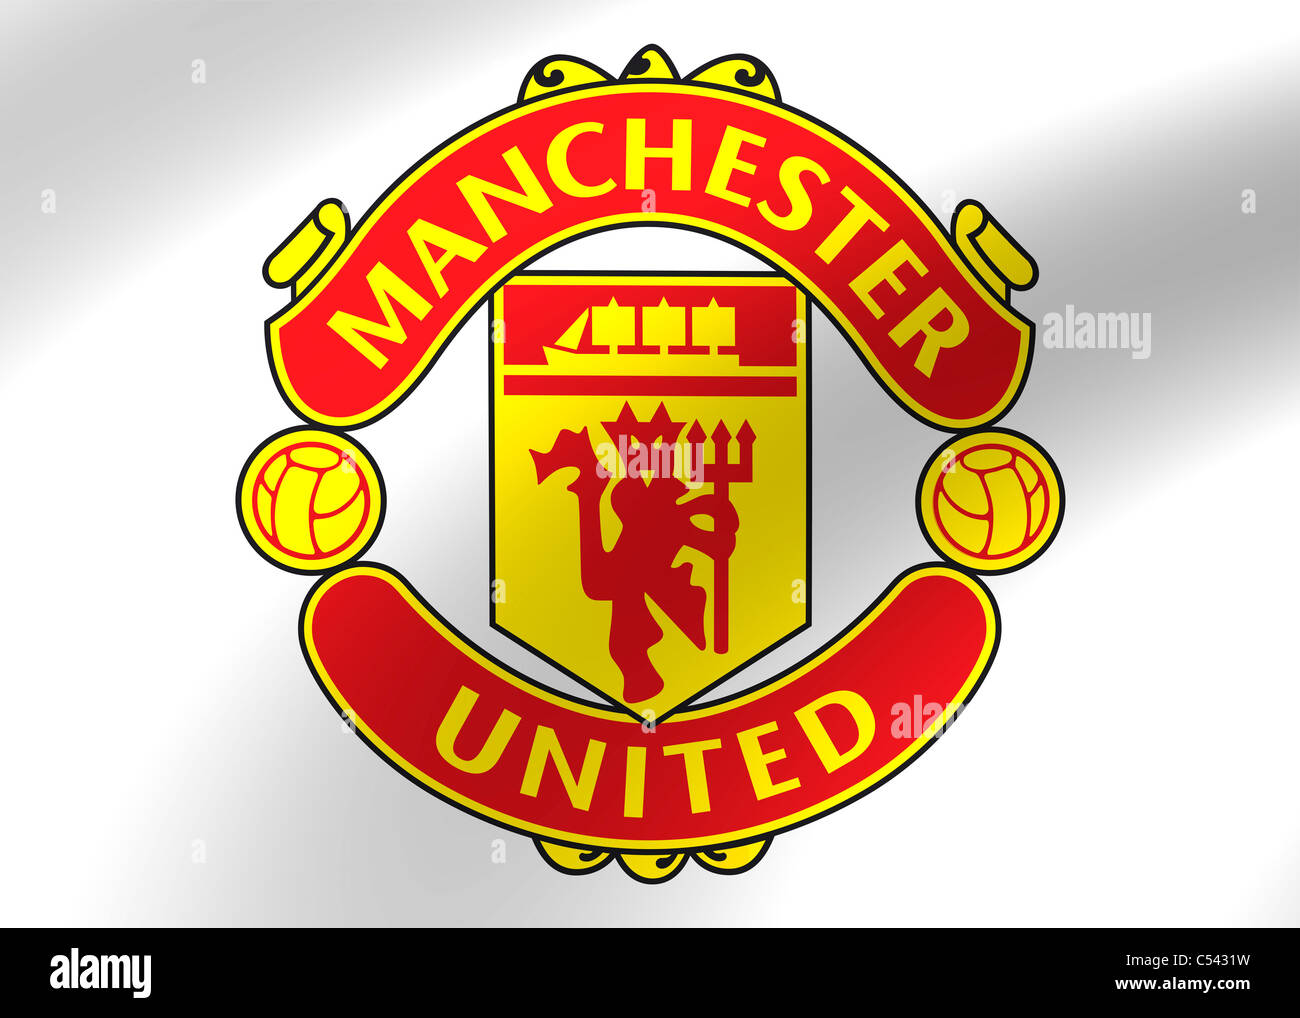 Manchester united flag logo symbol stock photos manchester united manchester united flag logo symbol icon stock image voltagebd Image collections